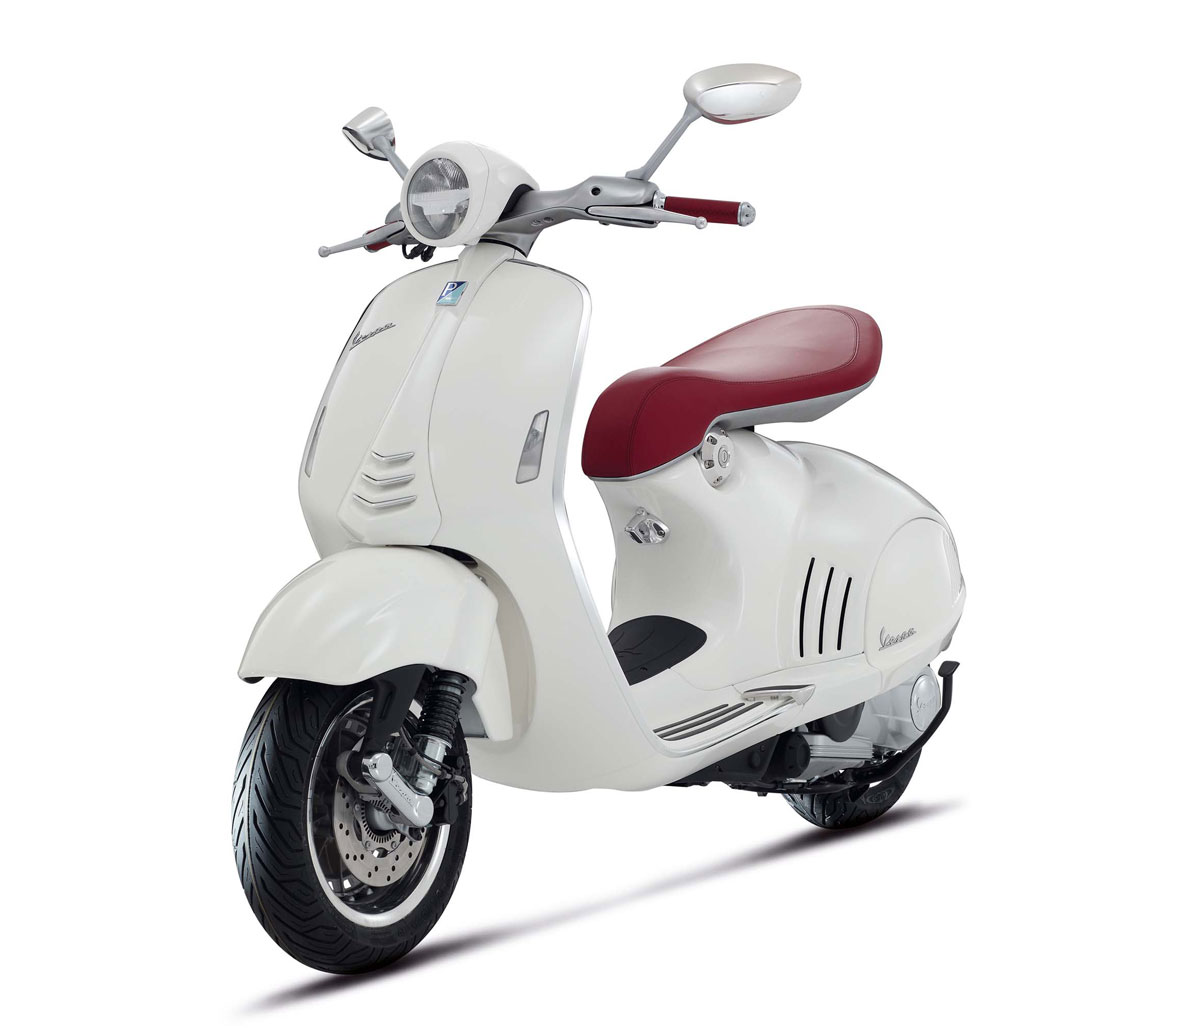 Commuters: The Coolest New Scooters for Every Price Range